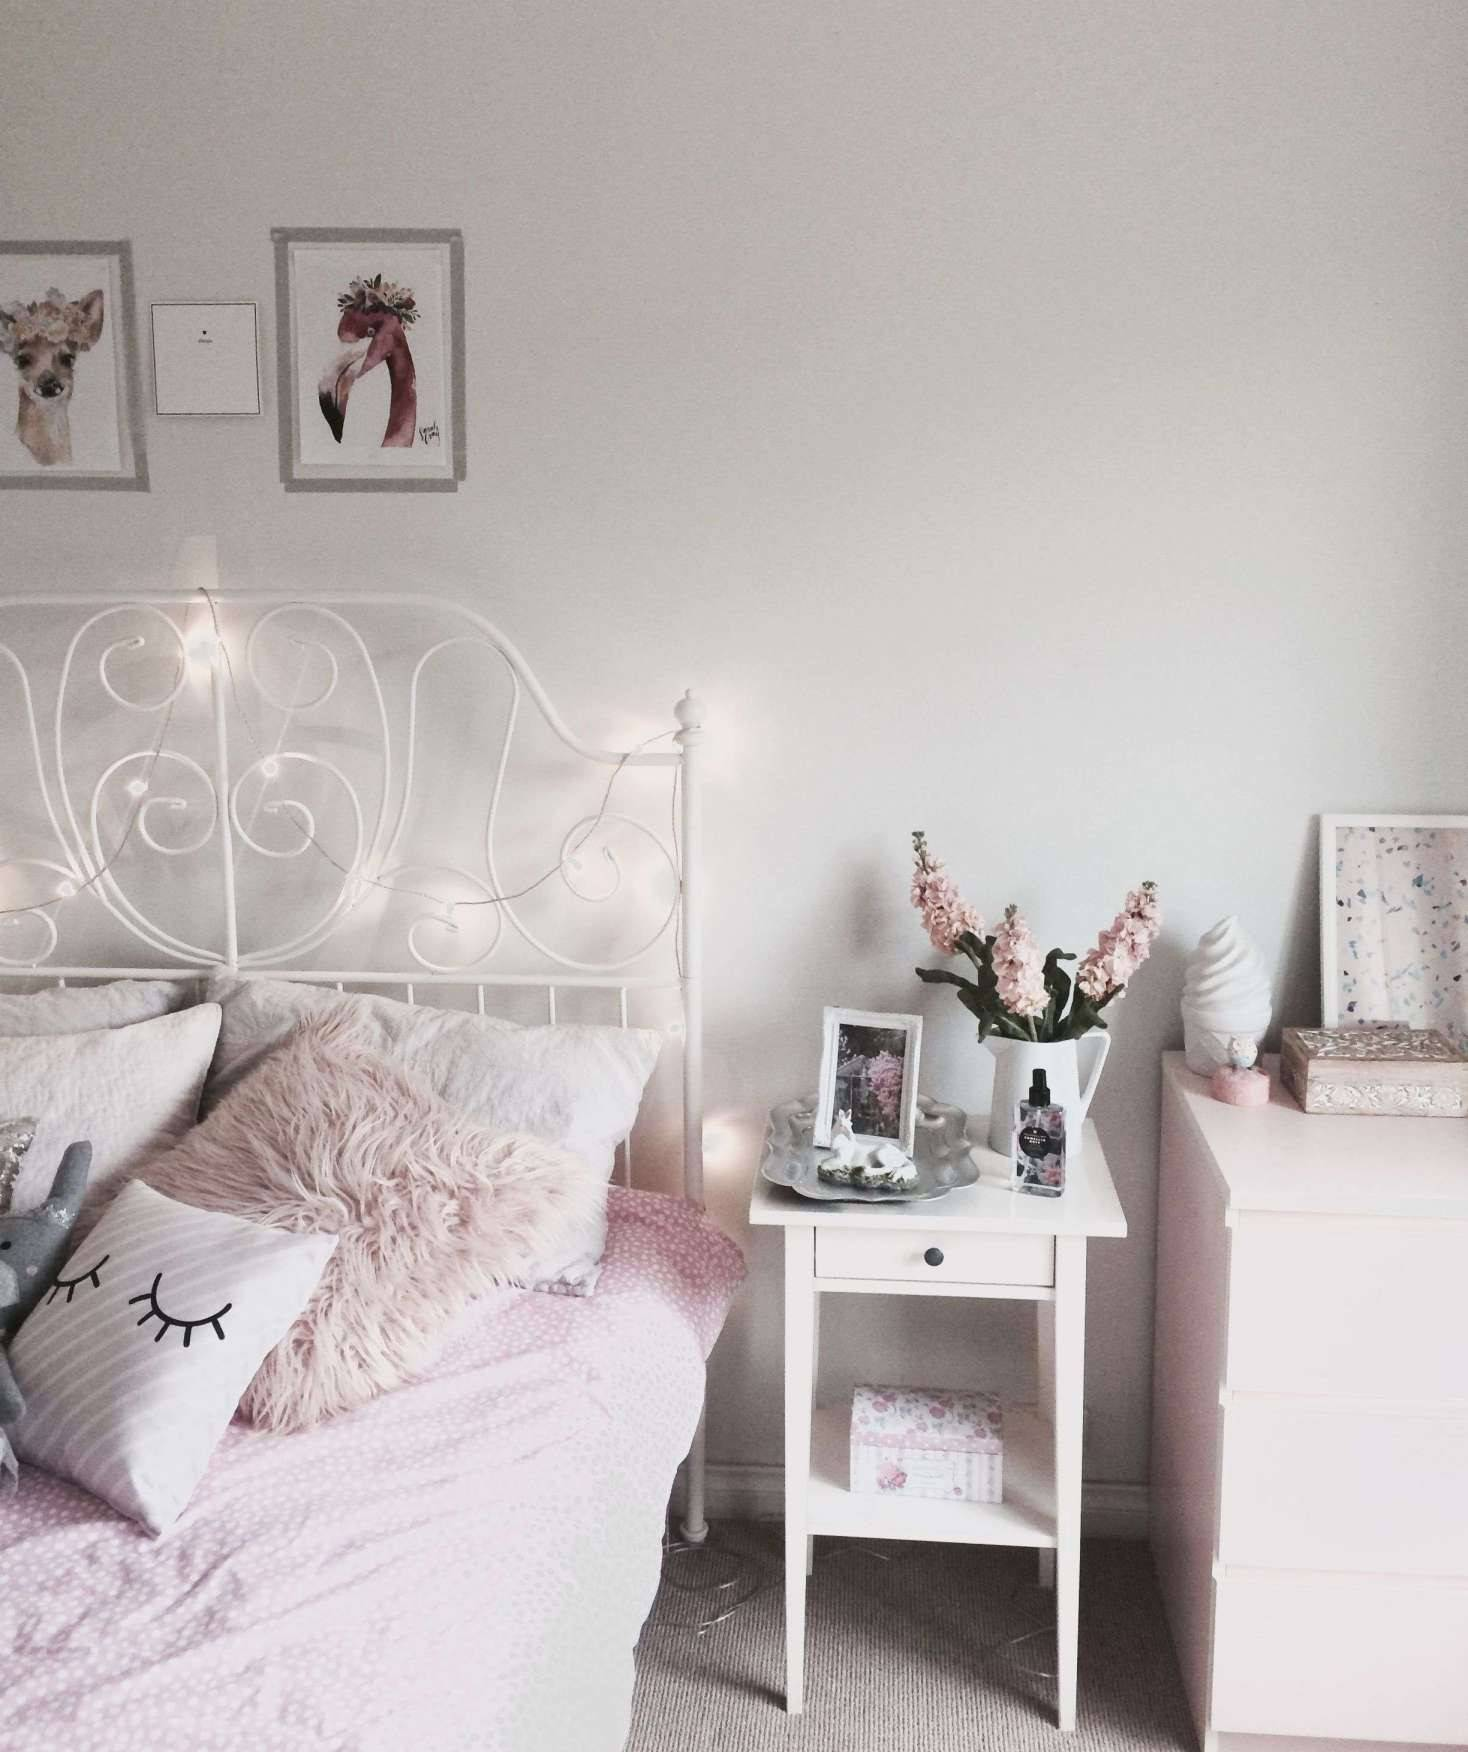 tween bedroom ideas for small rooms inspirational luxury girl room ideas teenagers decorating ideas in bedroom lovely of tween bedroom ideas for small rooms